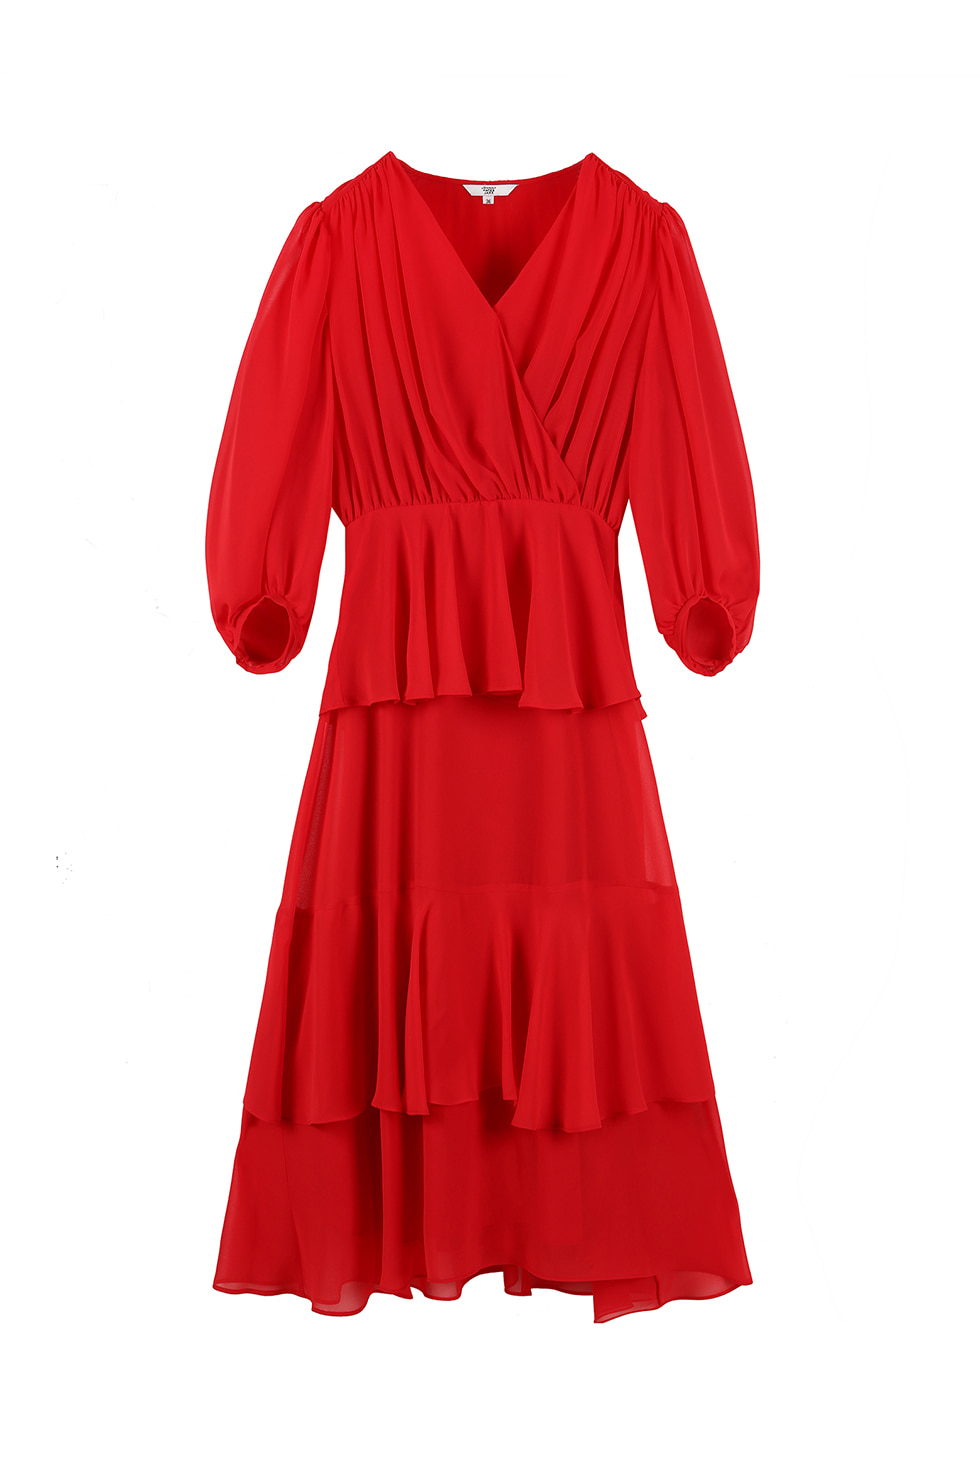 SHIRRING FULL DRESS - RED